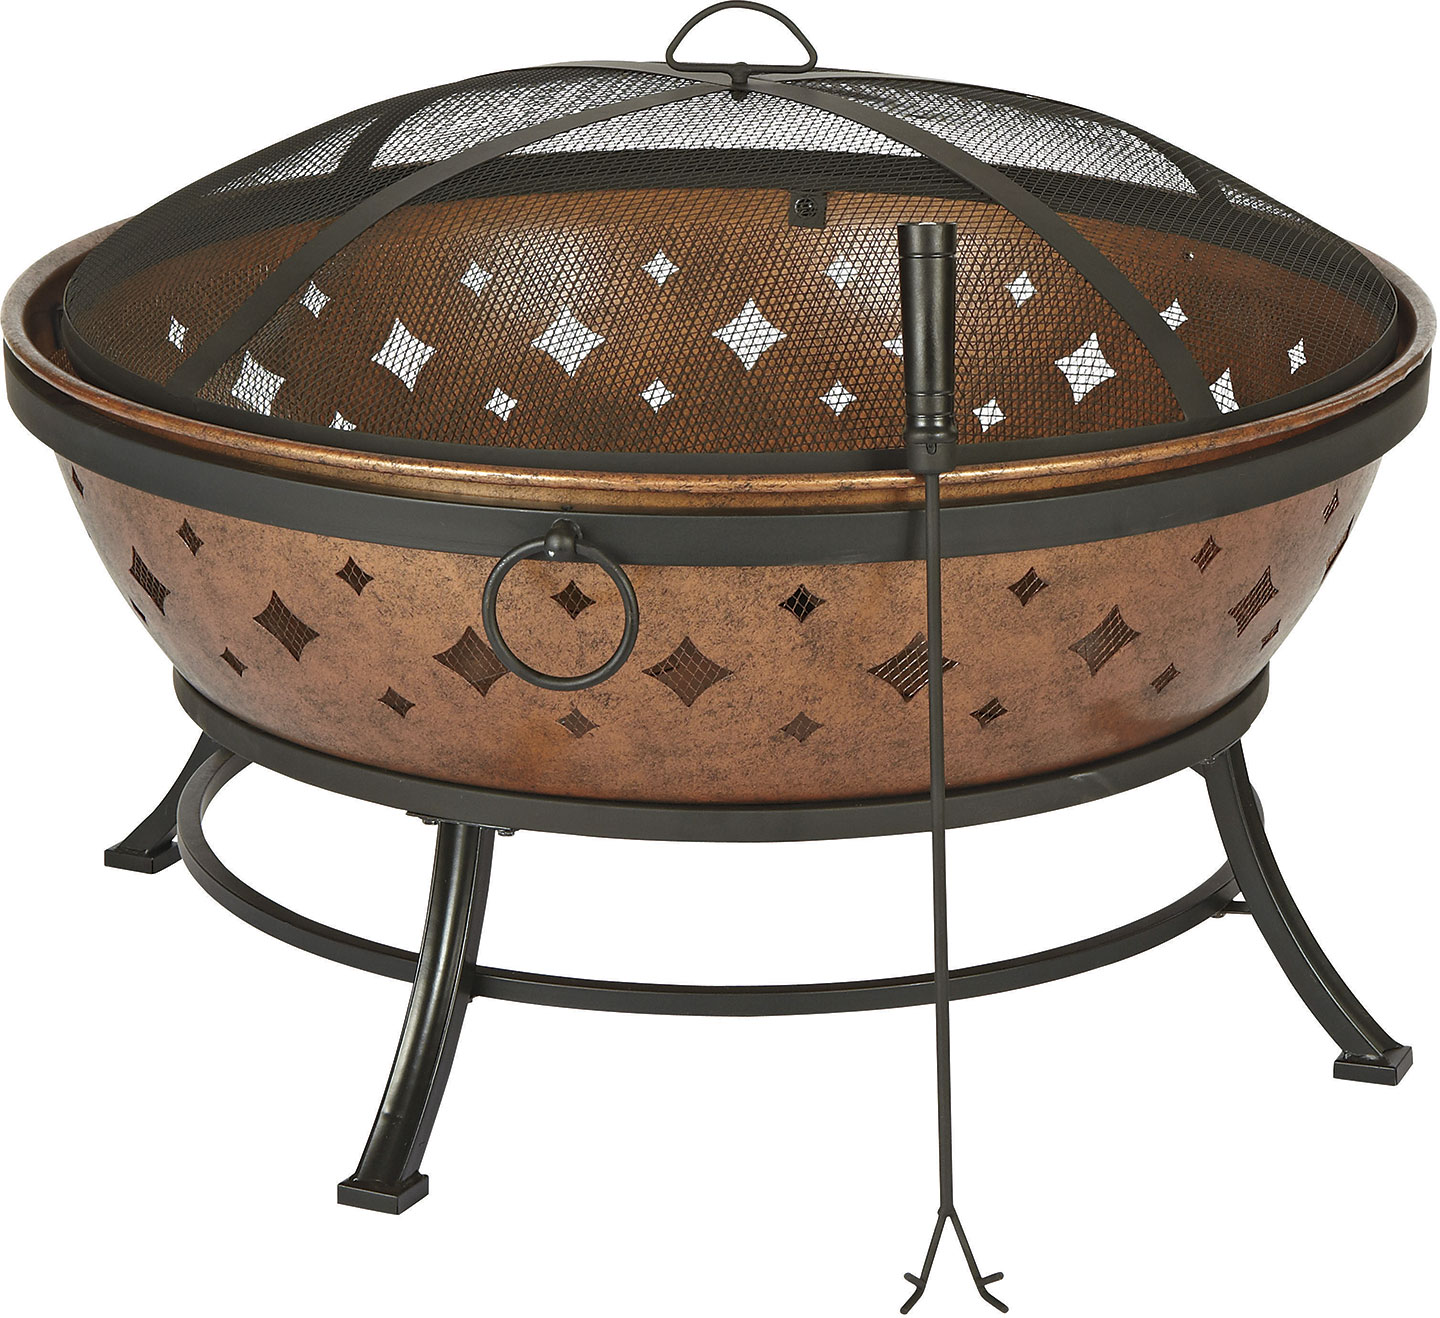 Outdoor Living - Great Lakes Ace Hardware Store on Propane Fire Pit Ace Hardware id=59781